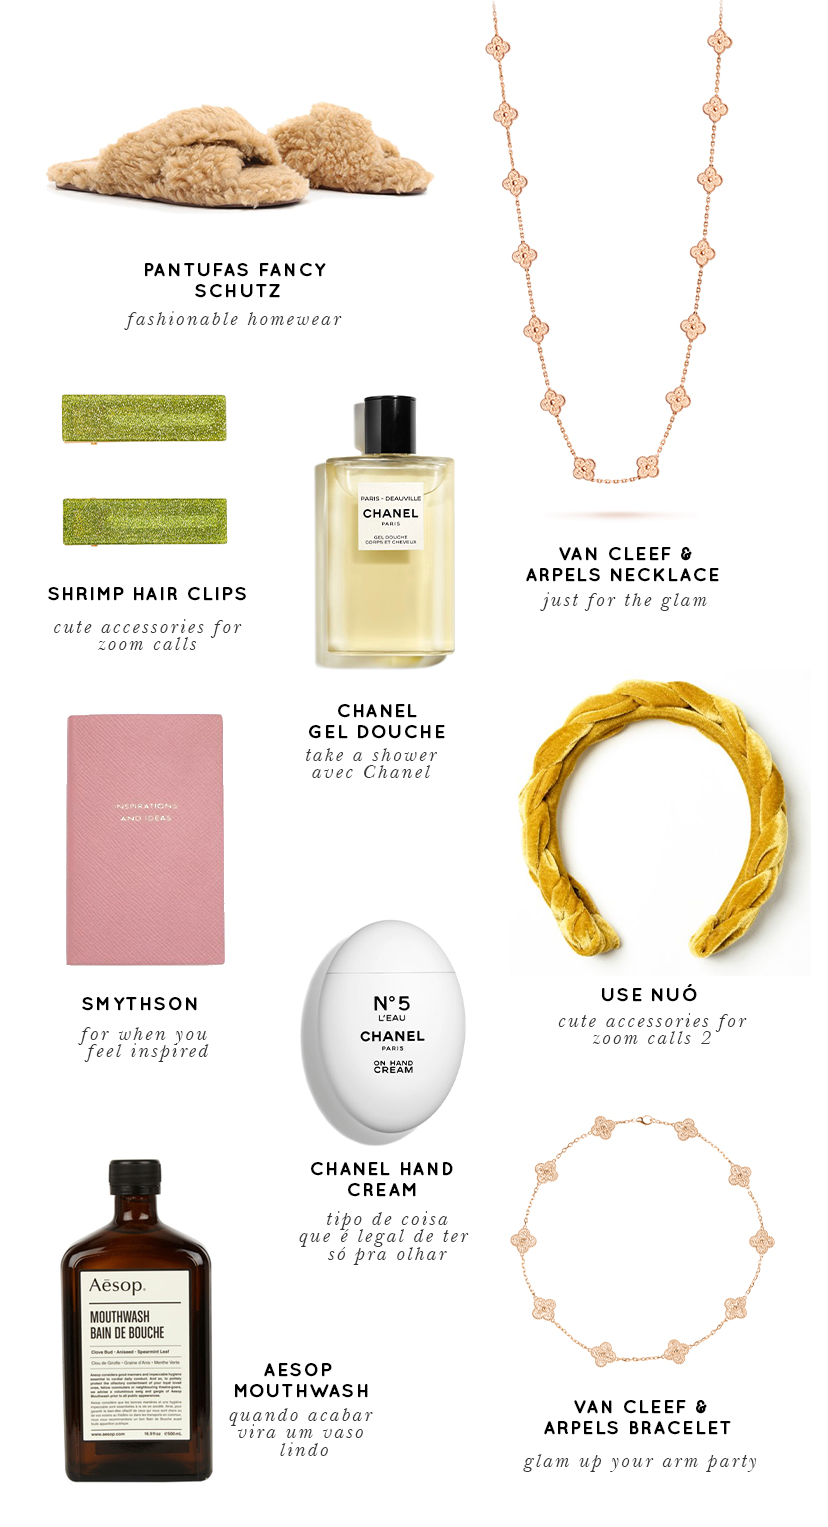 valentines june 2020 - The Indulgent Valentine's Day Gift Guide